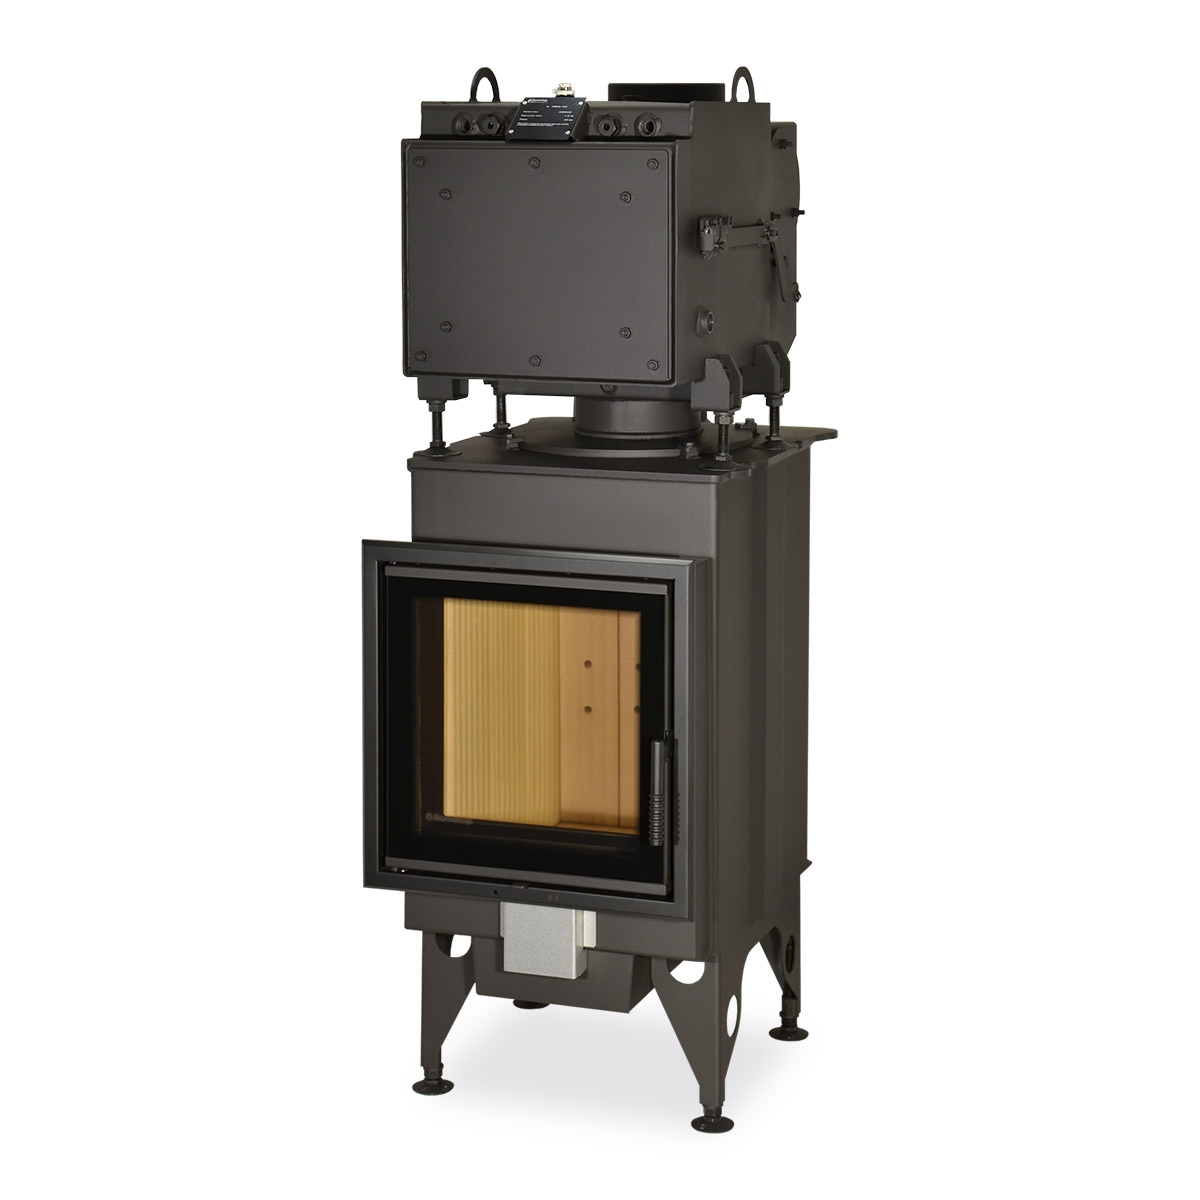 KV 025 N02 - fireplace insert with double glazing and hot-water exchanger